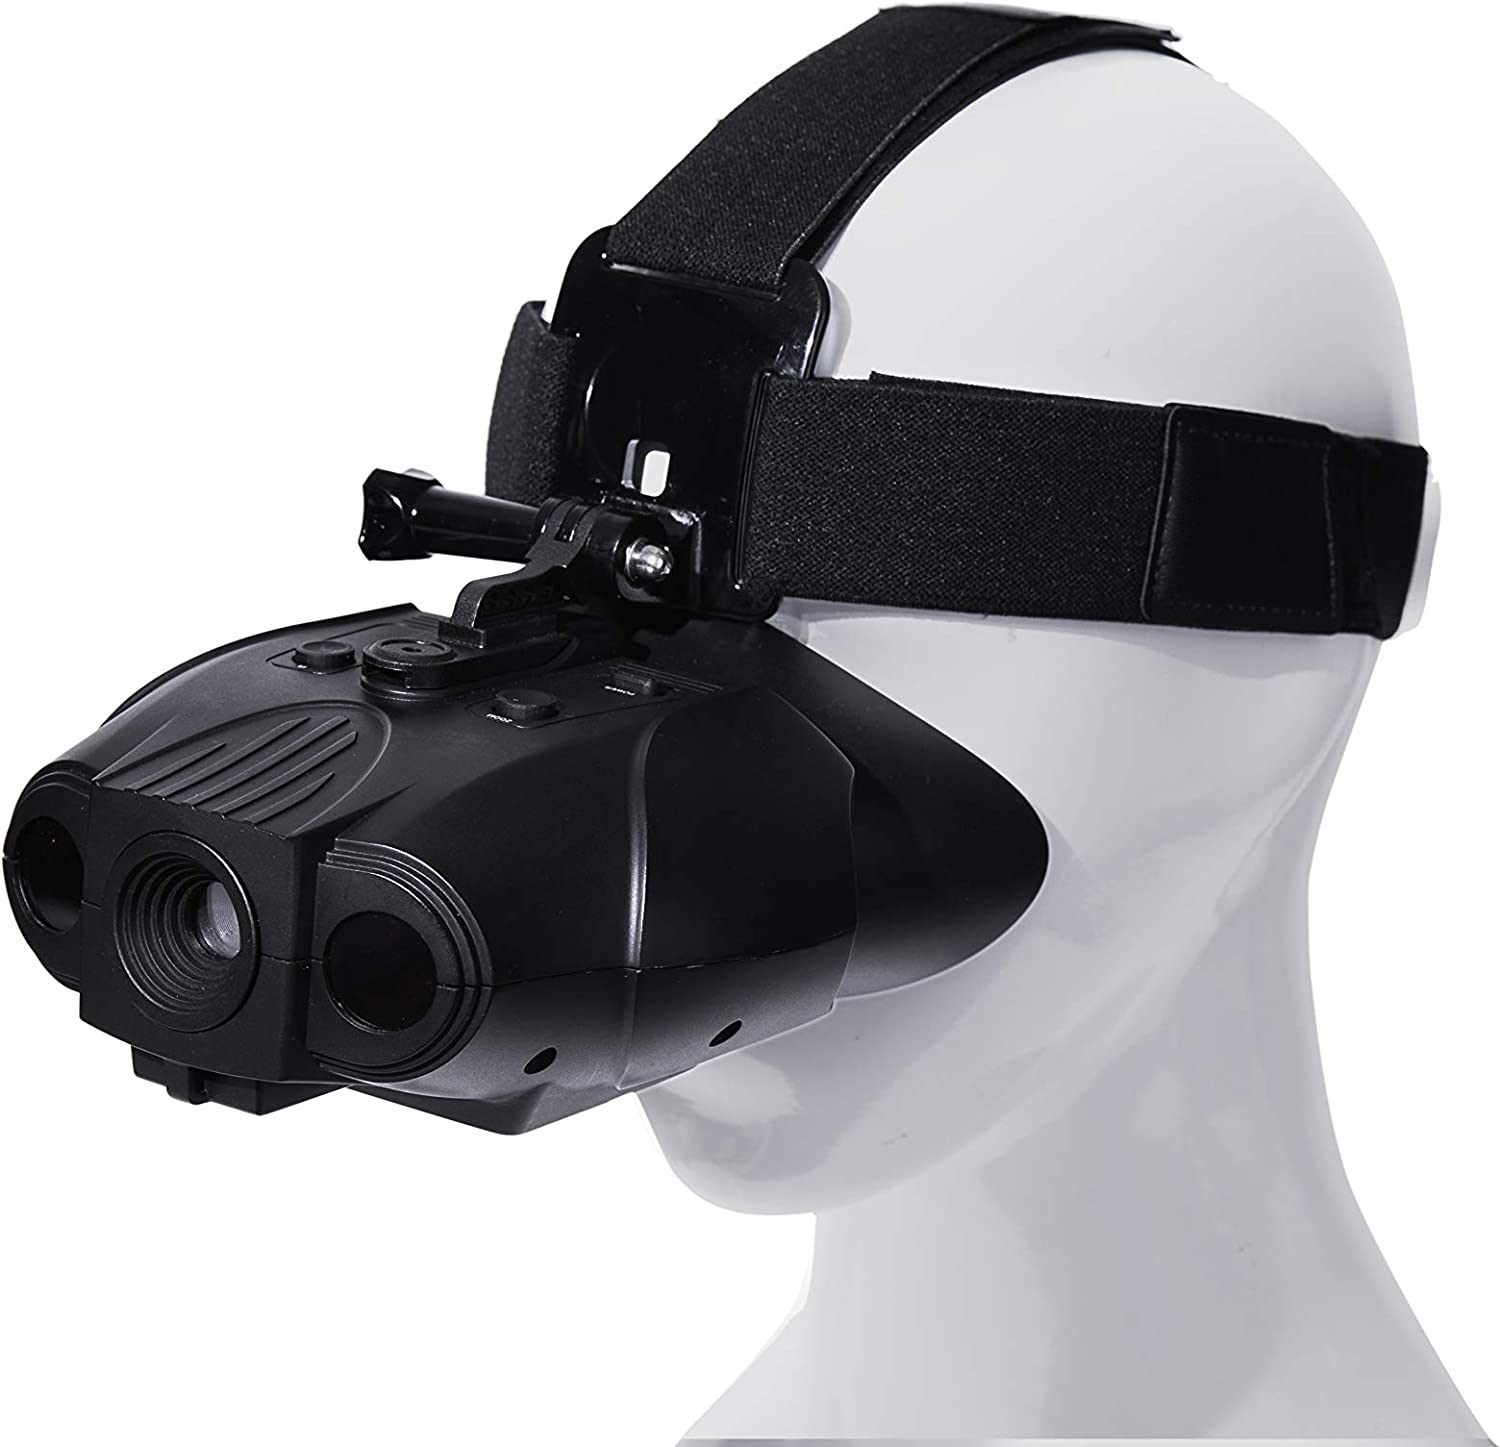 XVision Pro Rechargeable Digital Hands Free Night Vision Goggles, See 300 Yards at Night